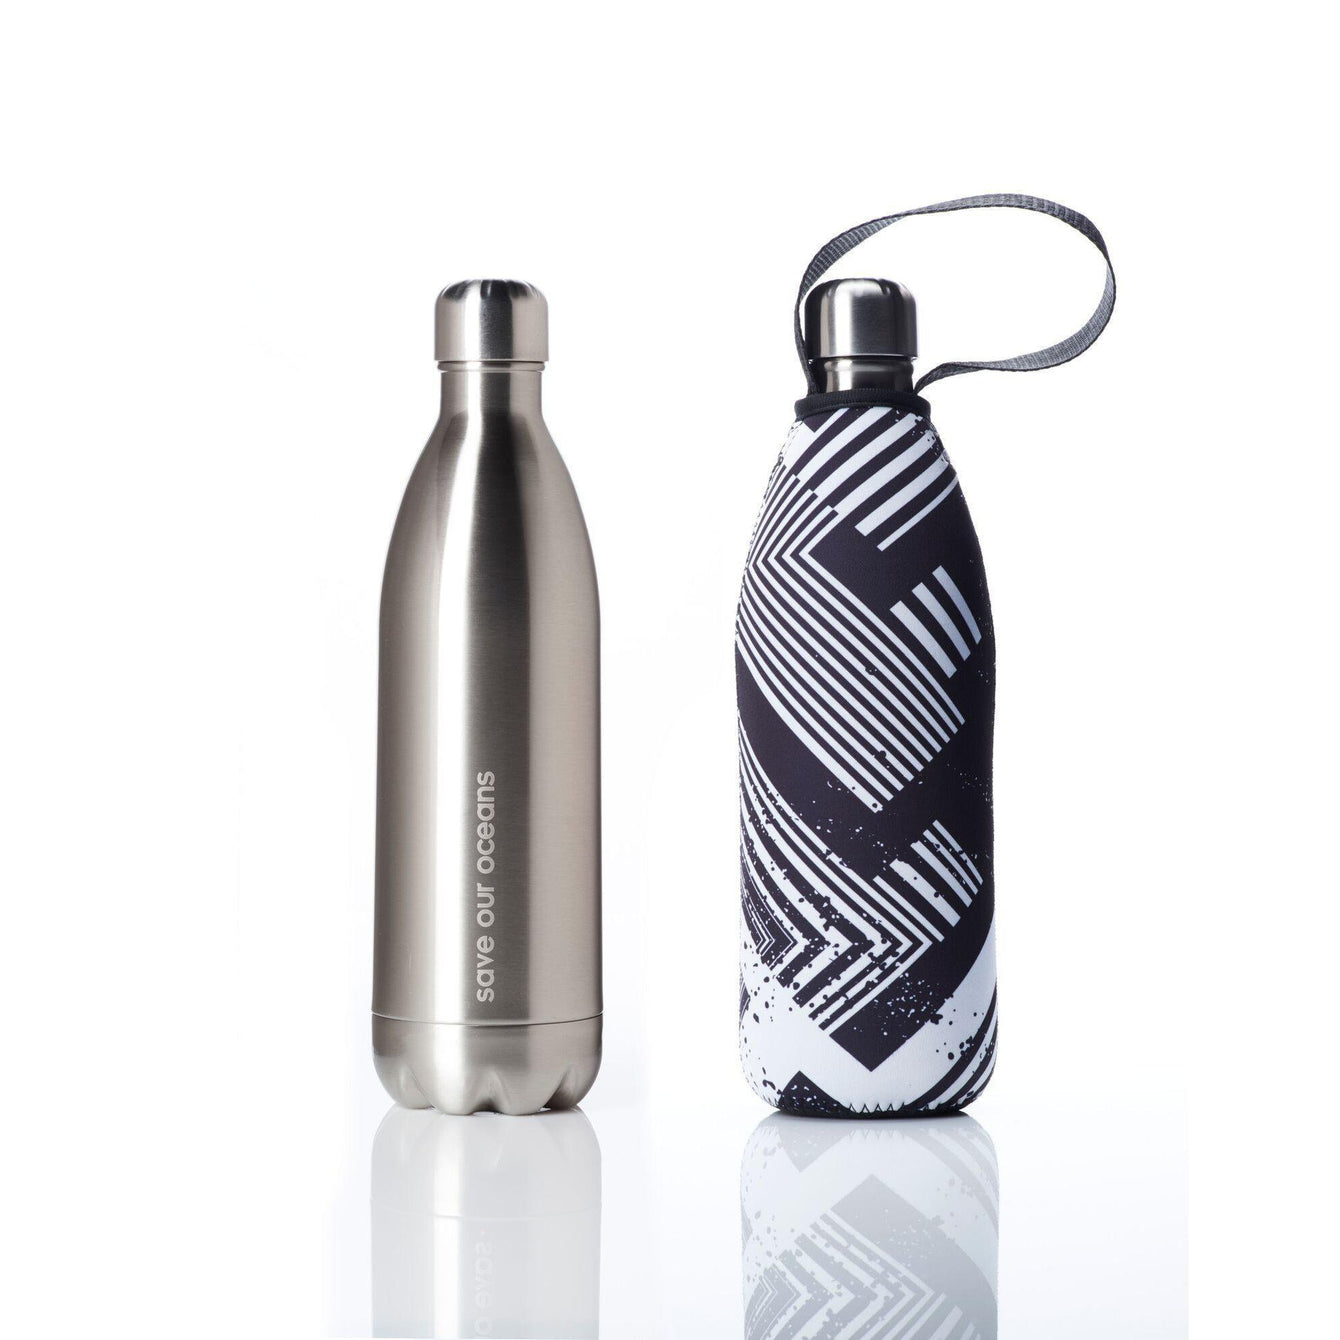 Insulated 34oz Silver Drink Bottle with Carry Cover in Silver Circuit Pattern-Home - Travel + Outdoors - Drink Bottles-BBBYO USA-34oz/1000ml-Peccadilly